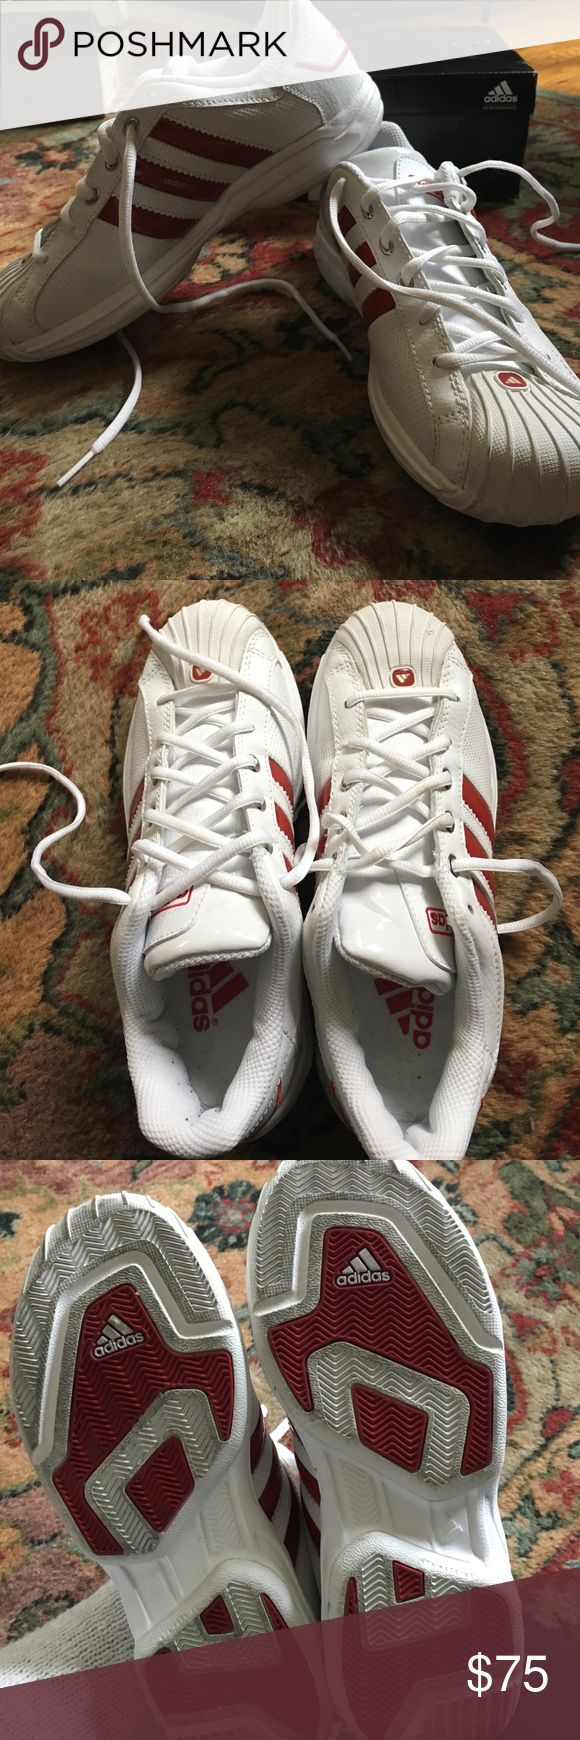 Adidas Superstar 2G Ultra J basketball shoes Only worn a couple of times. Clean, in perfect condition. Men's 5/ or women's 6 Adidas Shoes Athletic Shoes